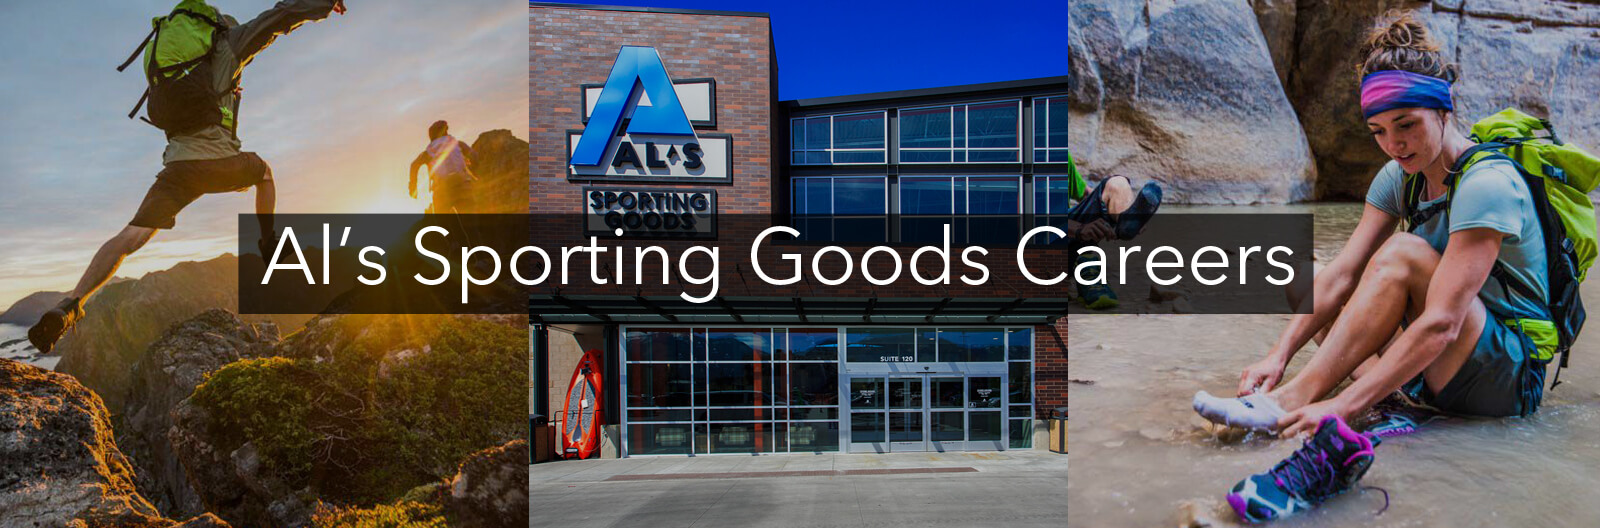 Al's Sporting Goods Careers